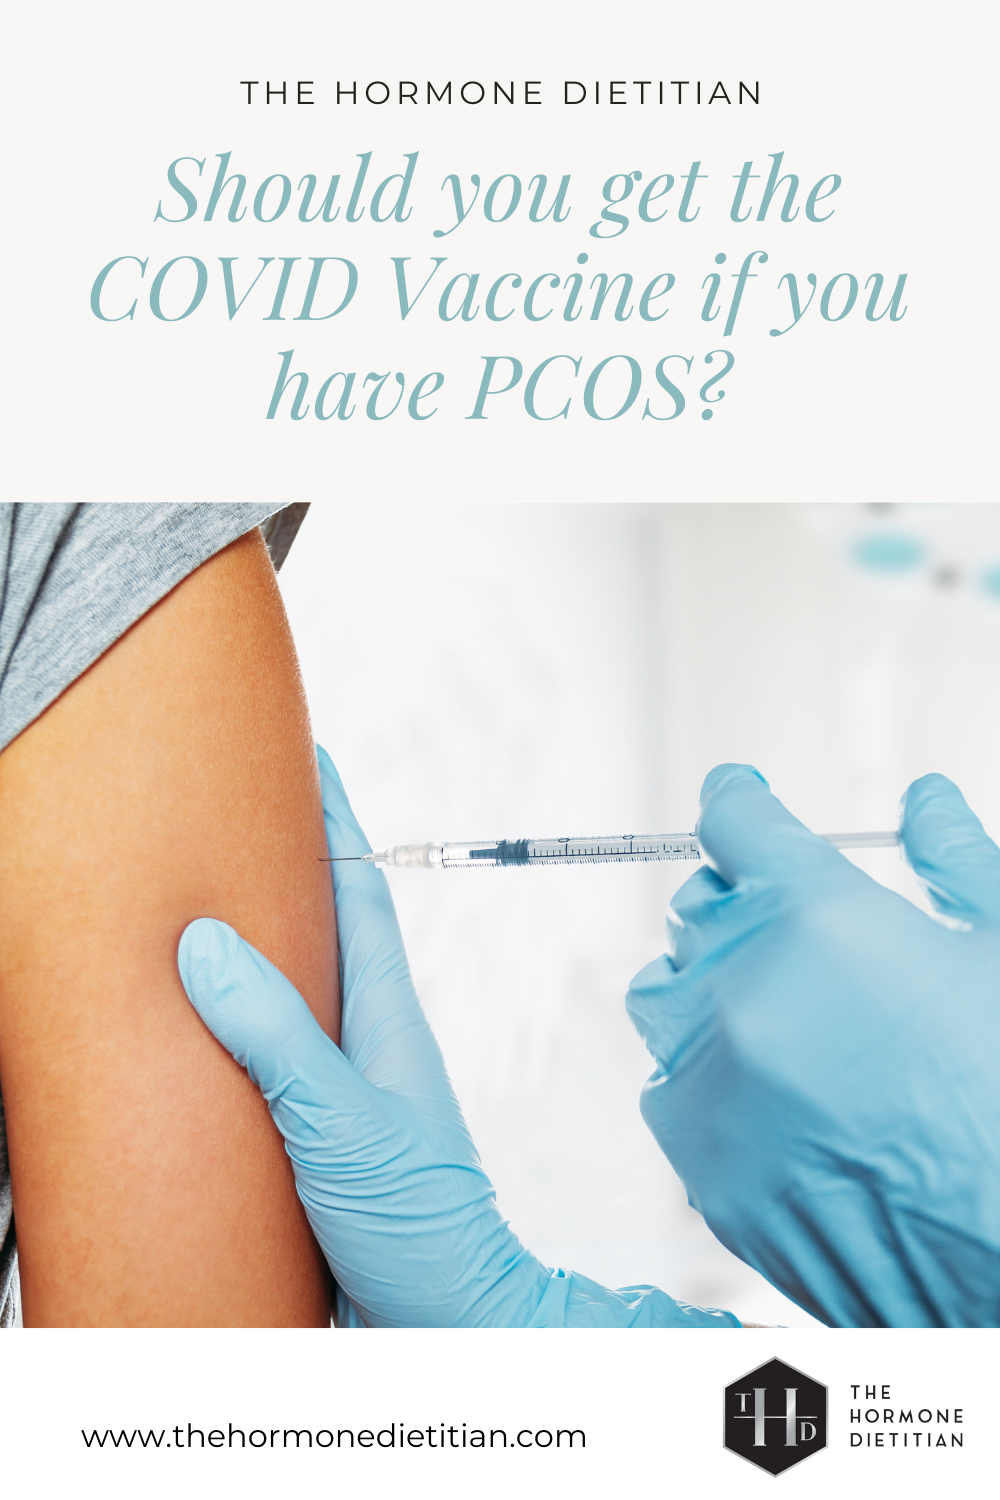 PCOS and COVID